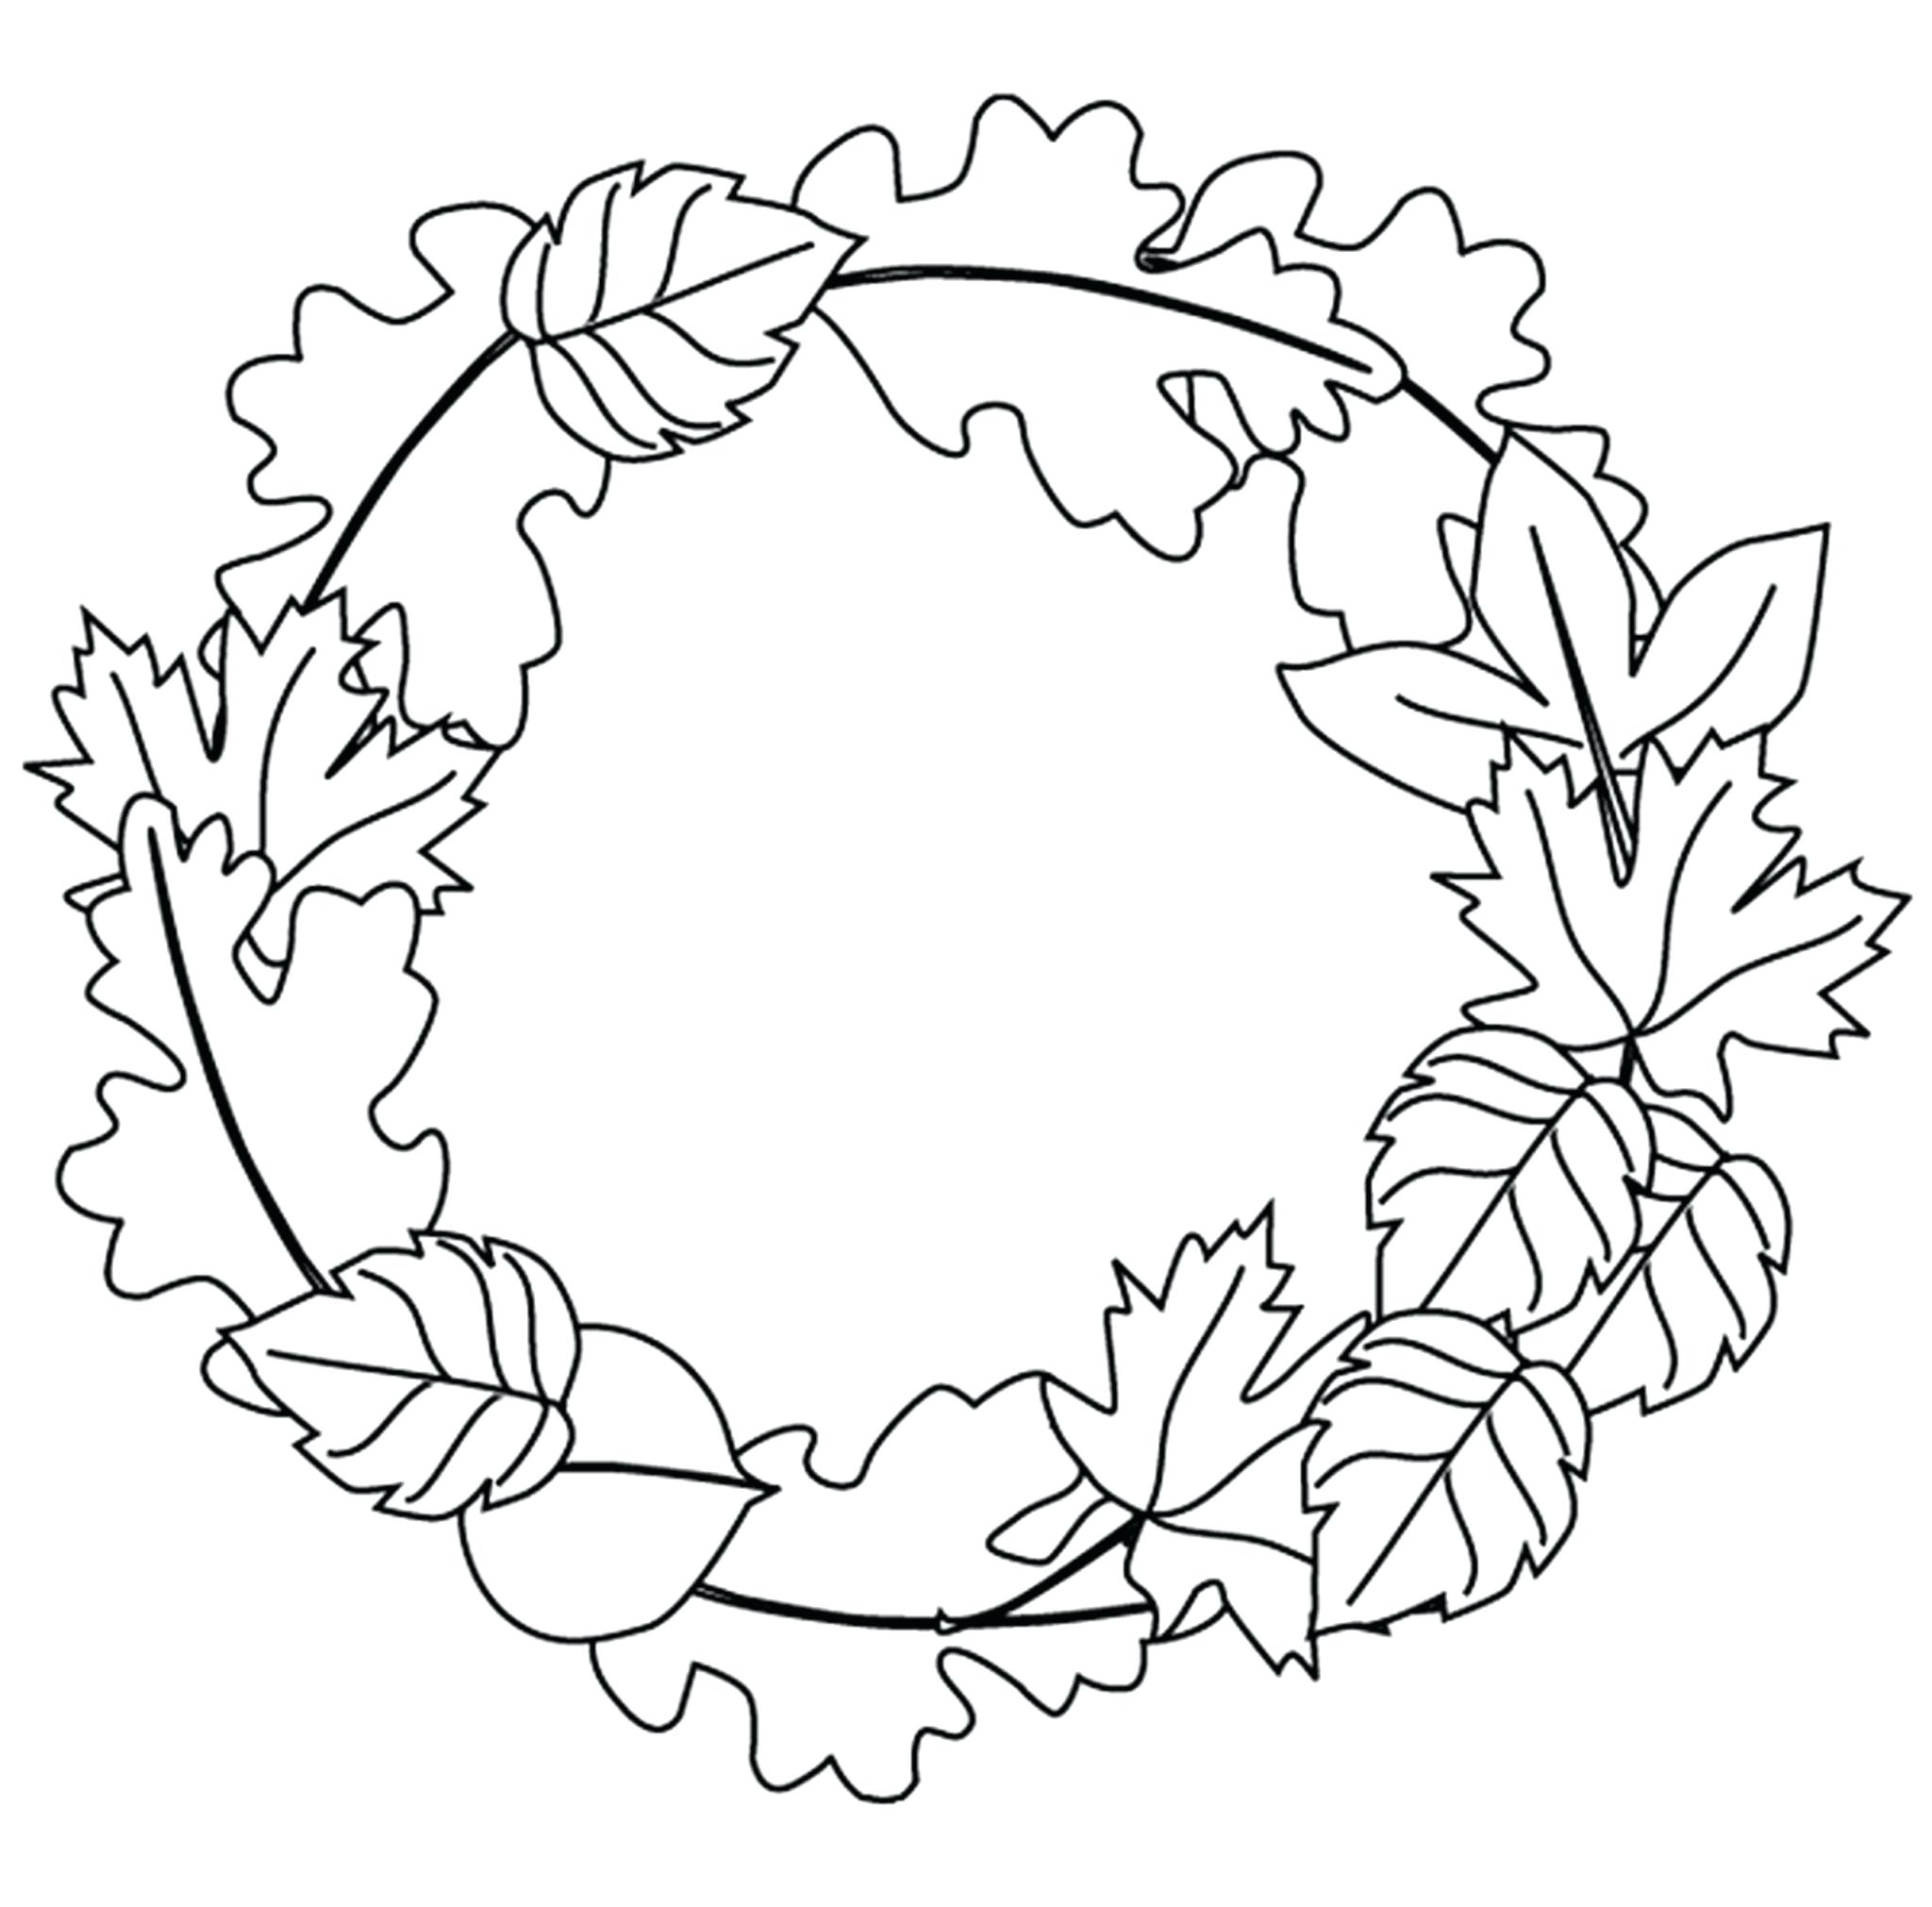 Fall Leaves Coloring Pages For Kindergarten At